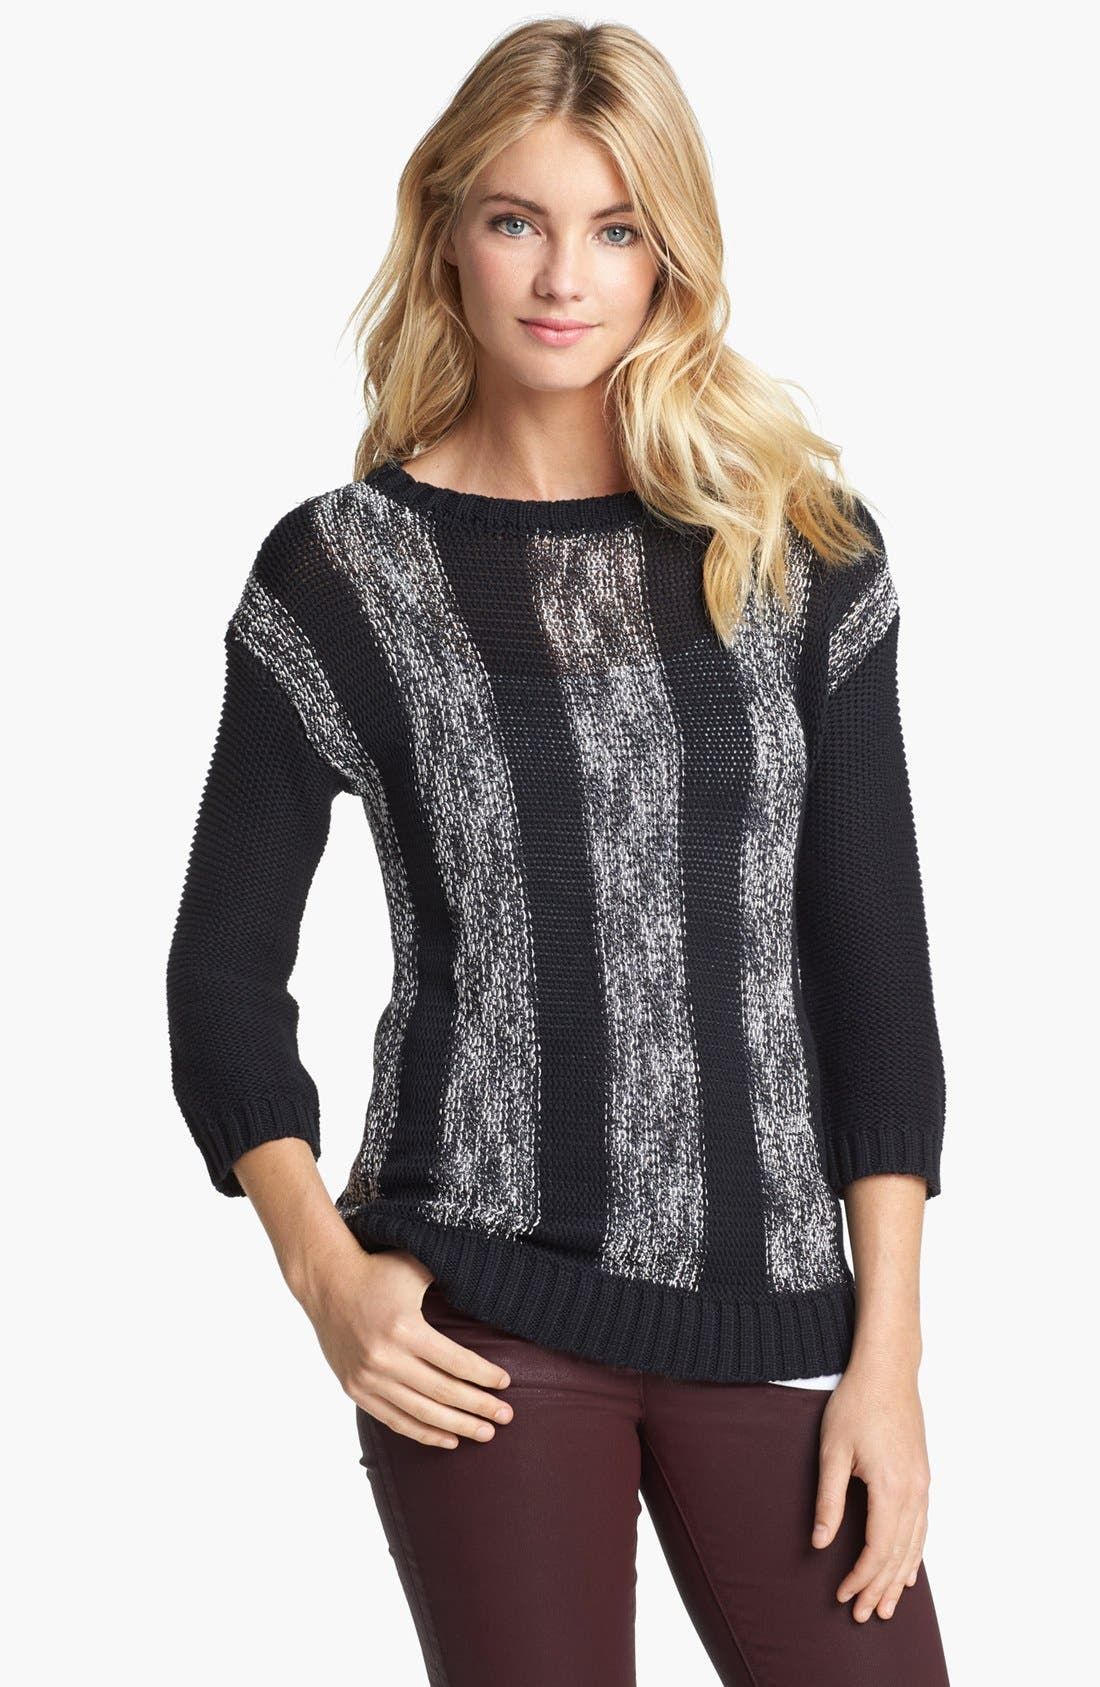 Alternate Image 1 Selected - Two by Vince Camuto Mix Stitch Sweater (Online Only)